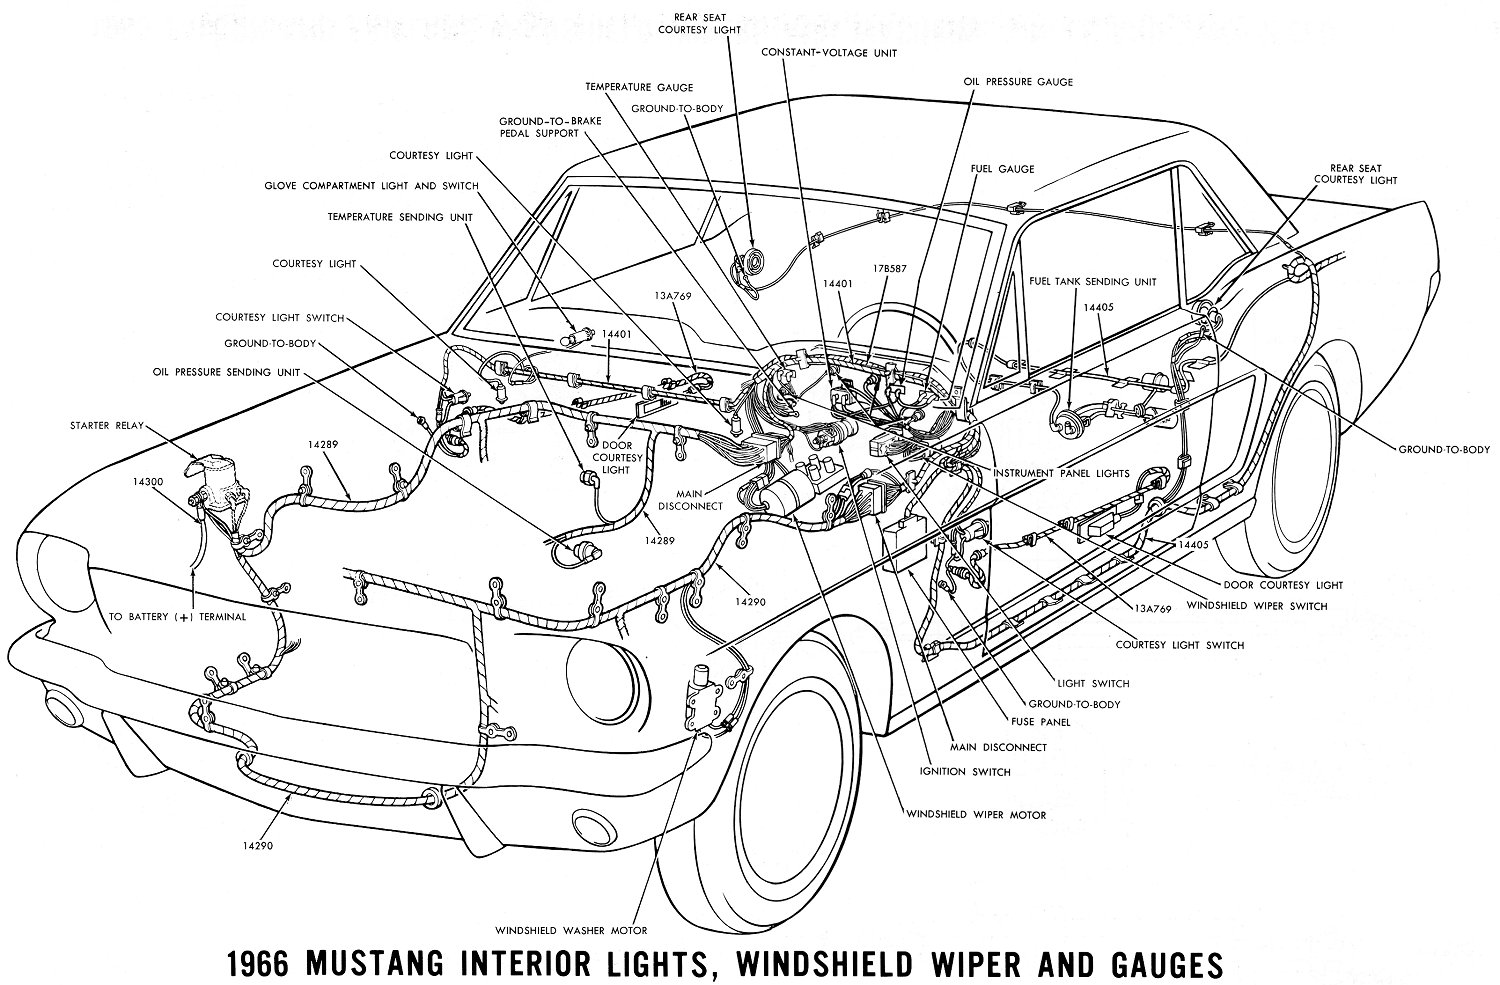 66inter 1966 mustang wiring diagrams average joe restoration 68 mustang headlight wiring diagram at readyjetset.co